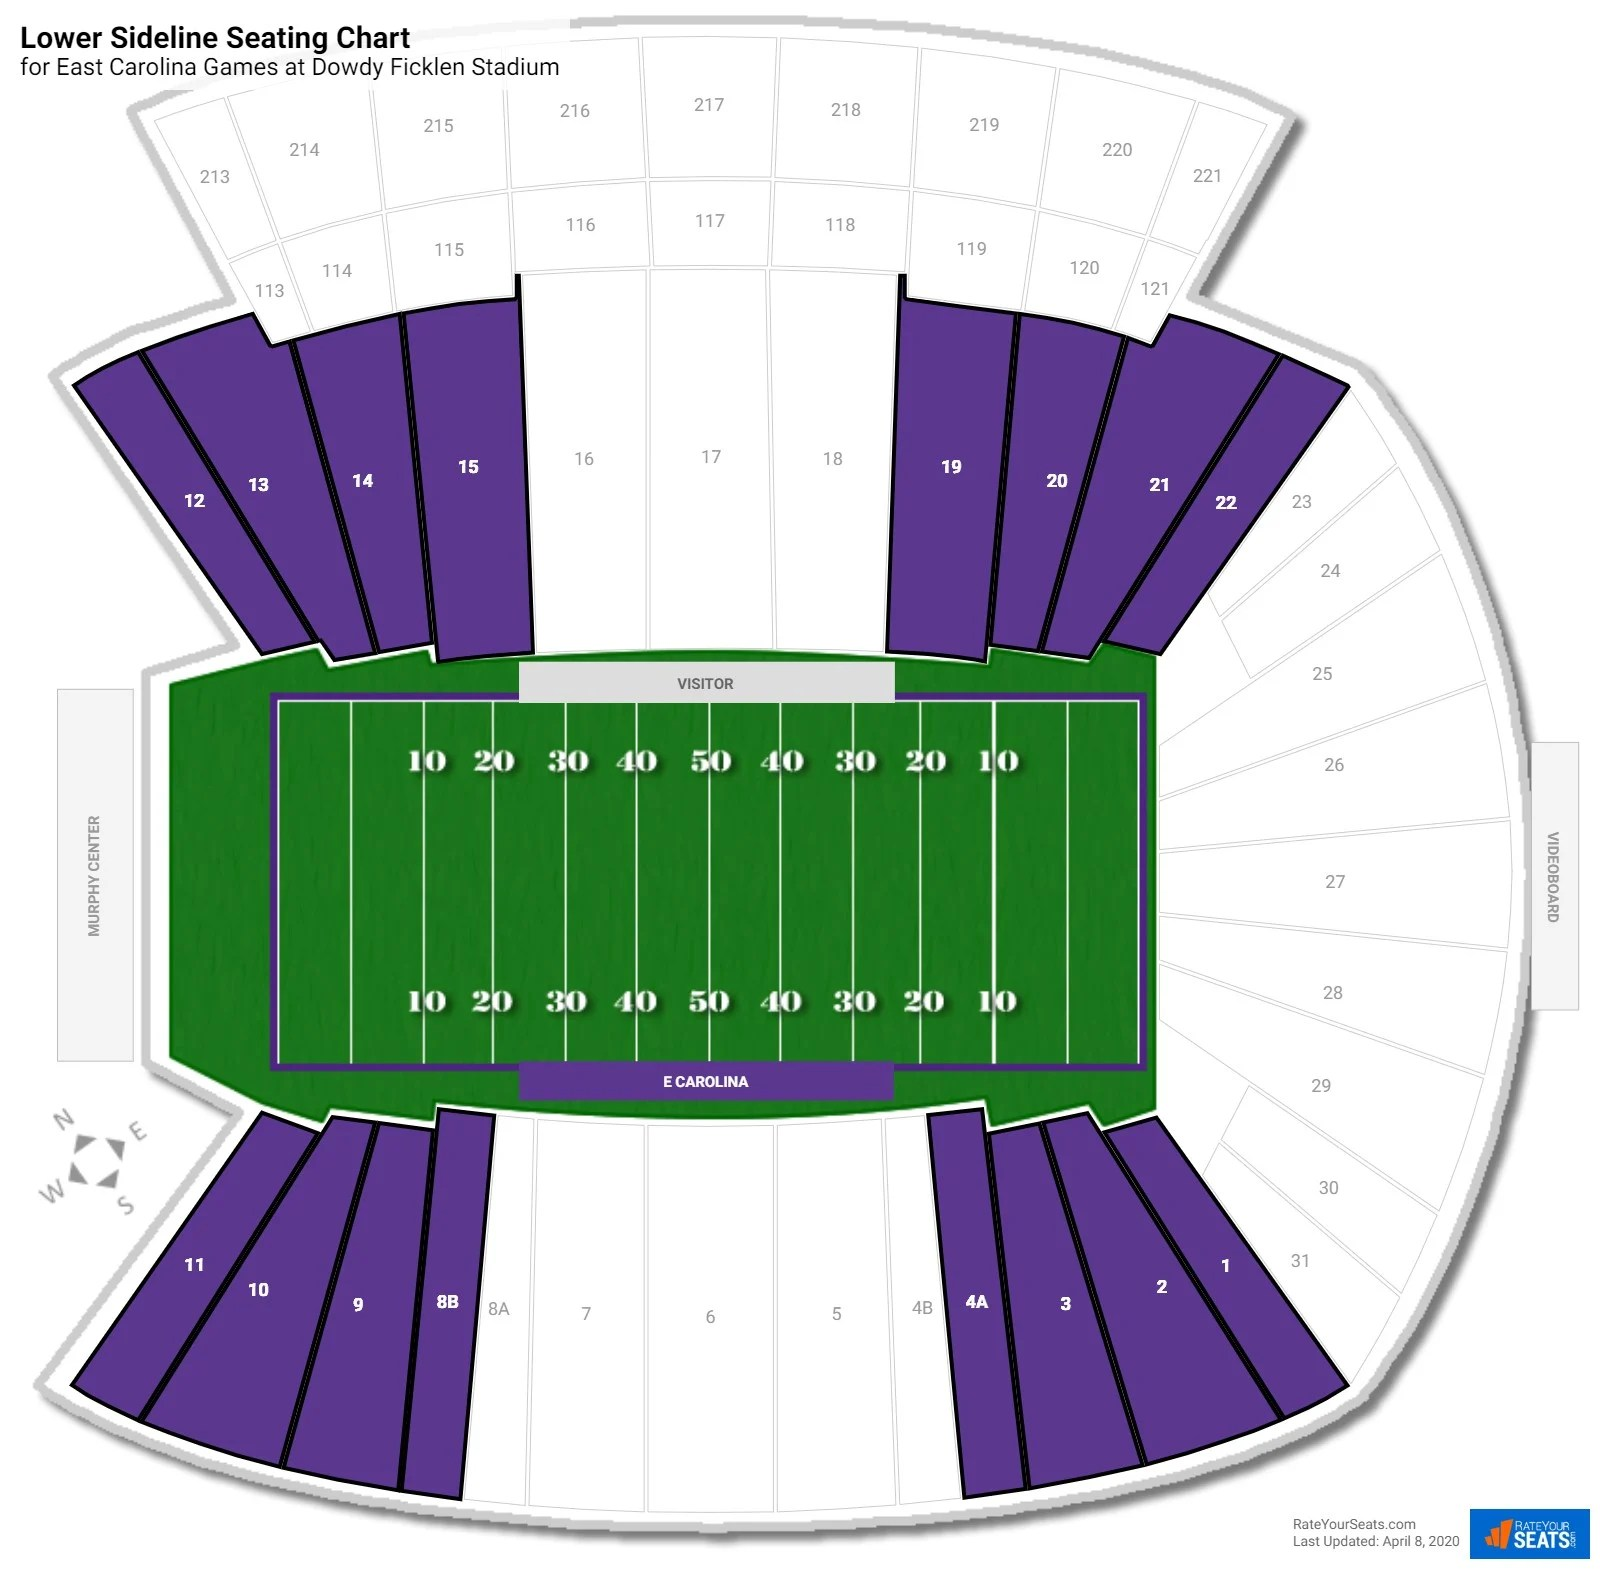 Dowdy Ficklen Stadium East Carolina Seating Guide